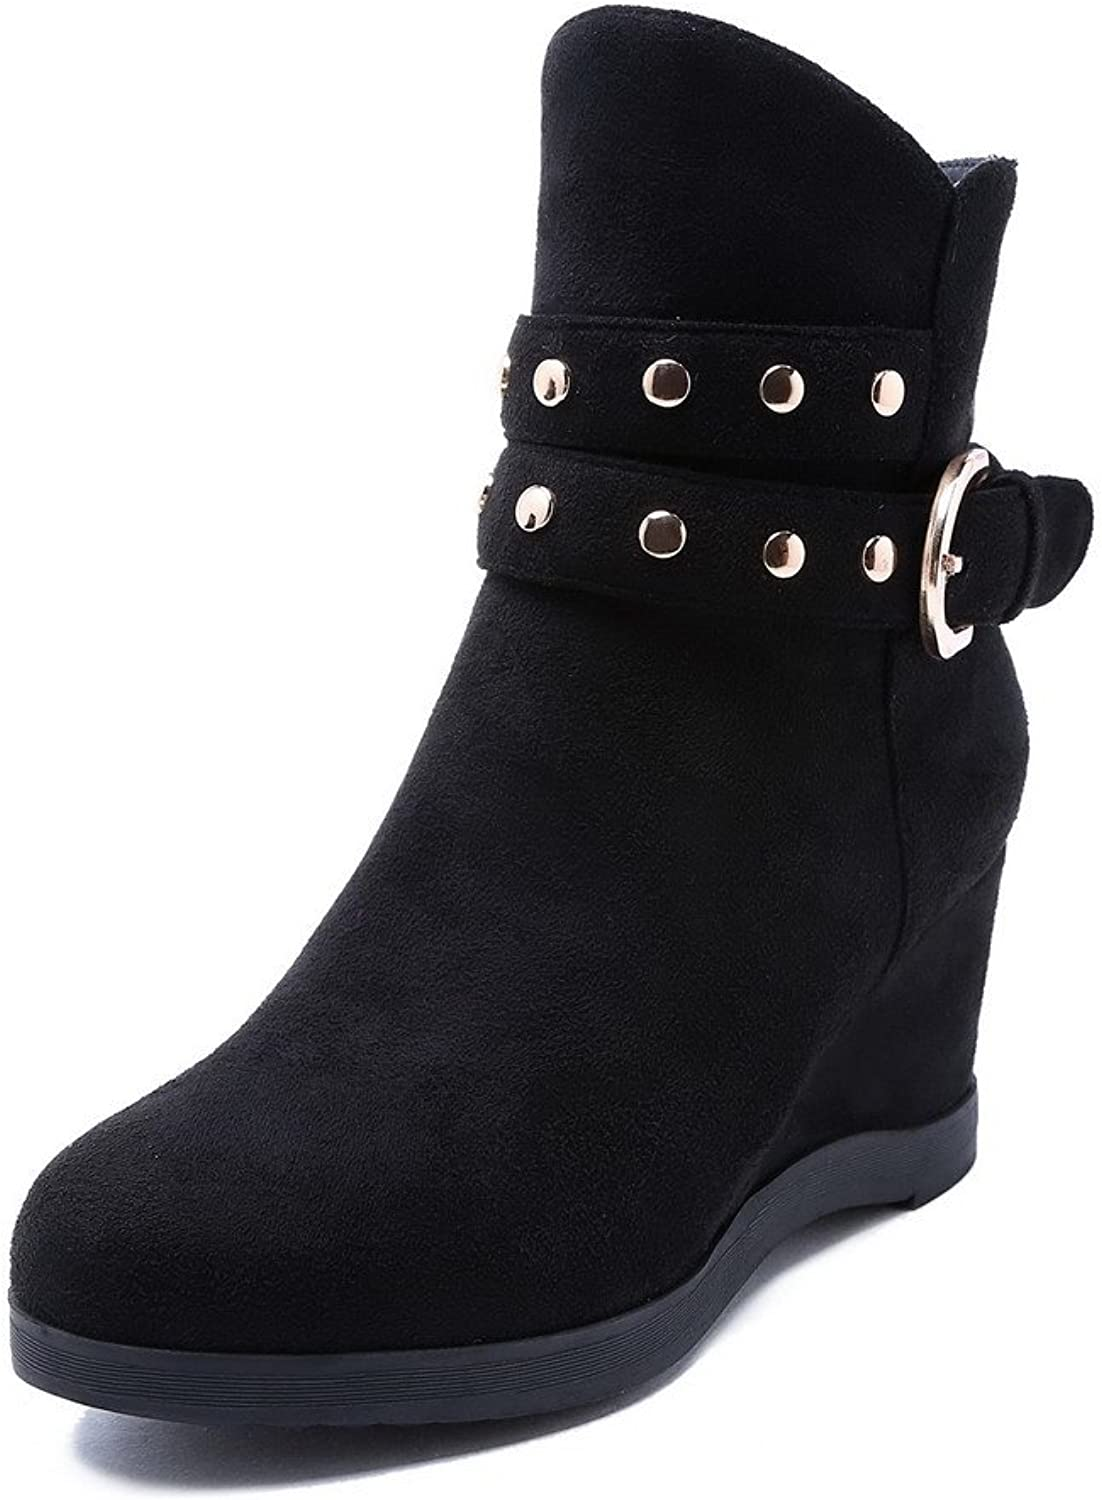 WeenFashion Women's Imitated Suede Kitten-Heels Round-Toe Boots with Rivet and Metal Buckles